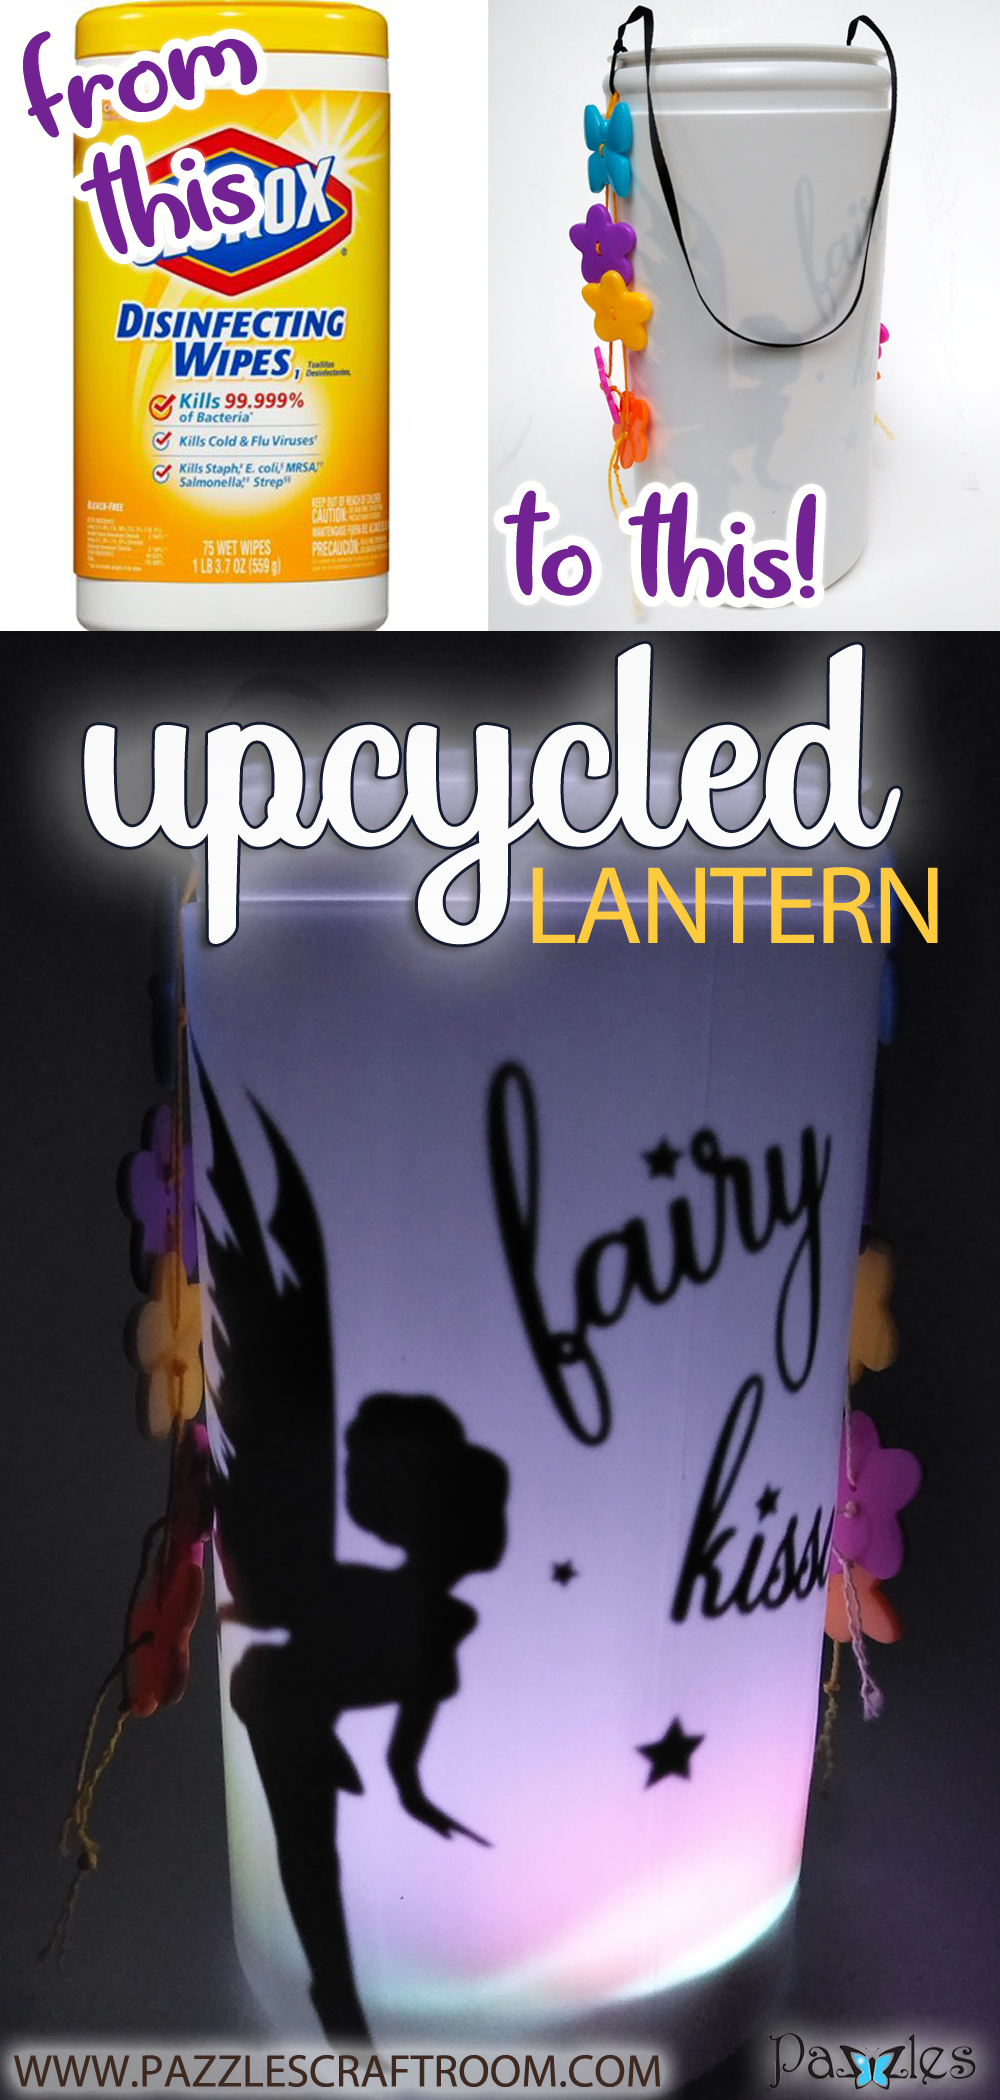 Pazzles DIY Craft Magic Upcycled Lantern from Disinfectant Wipe Container by Renee Smart